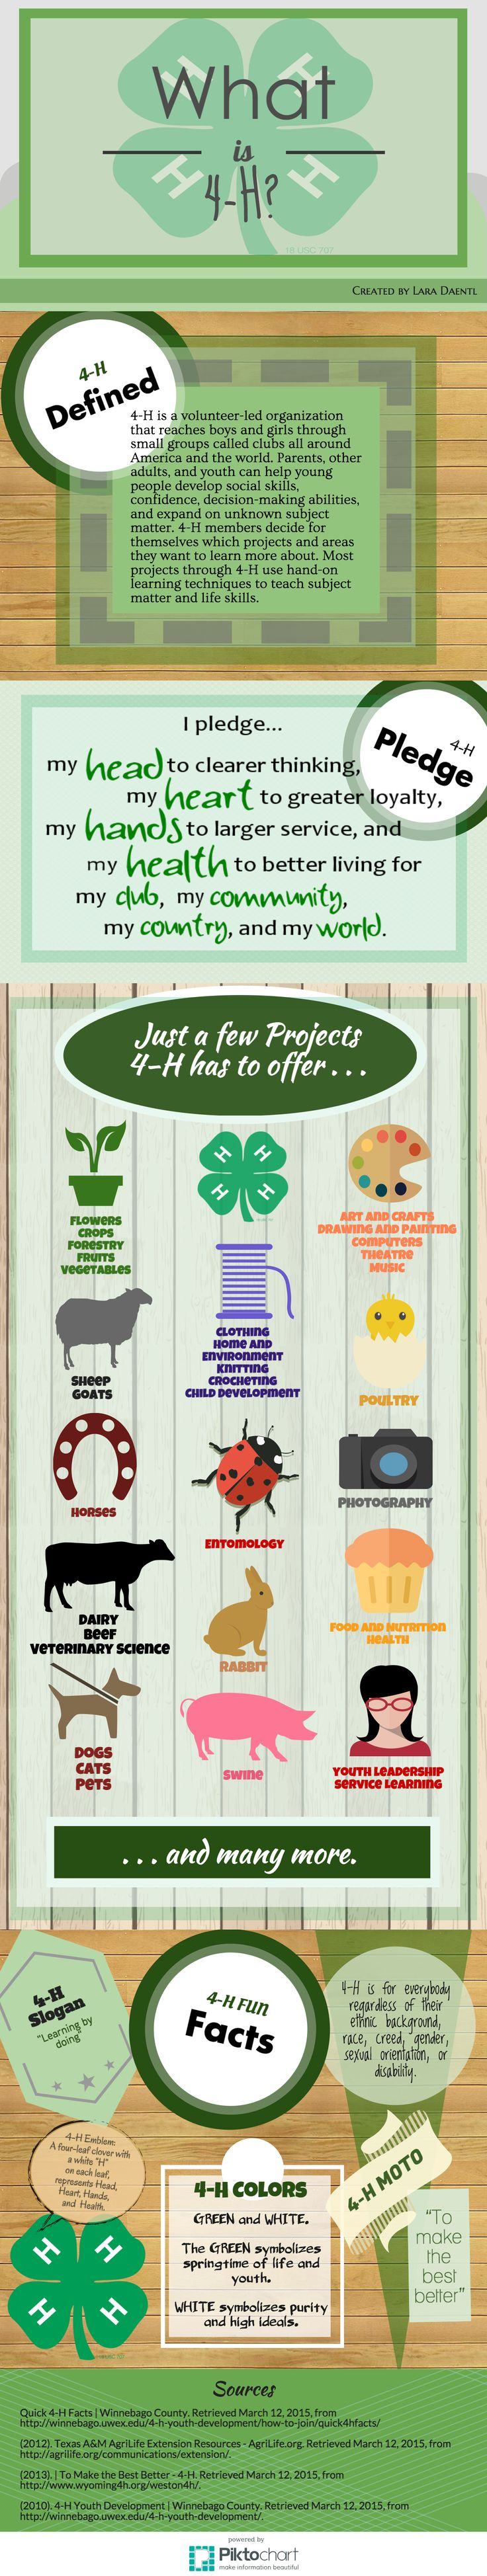 What is 4-H? Answers some great questions you may have!